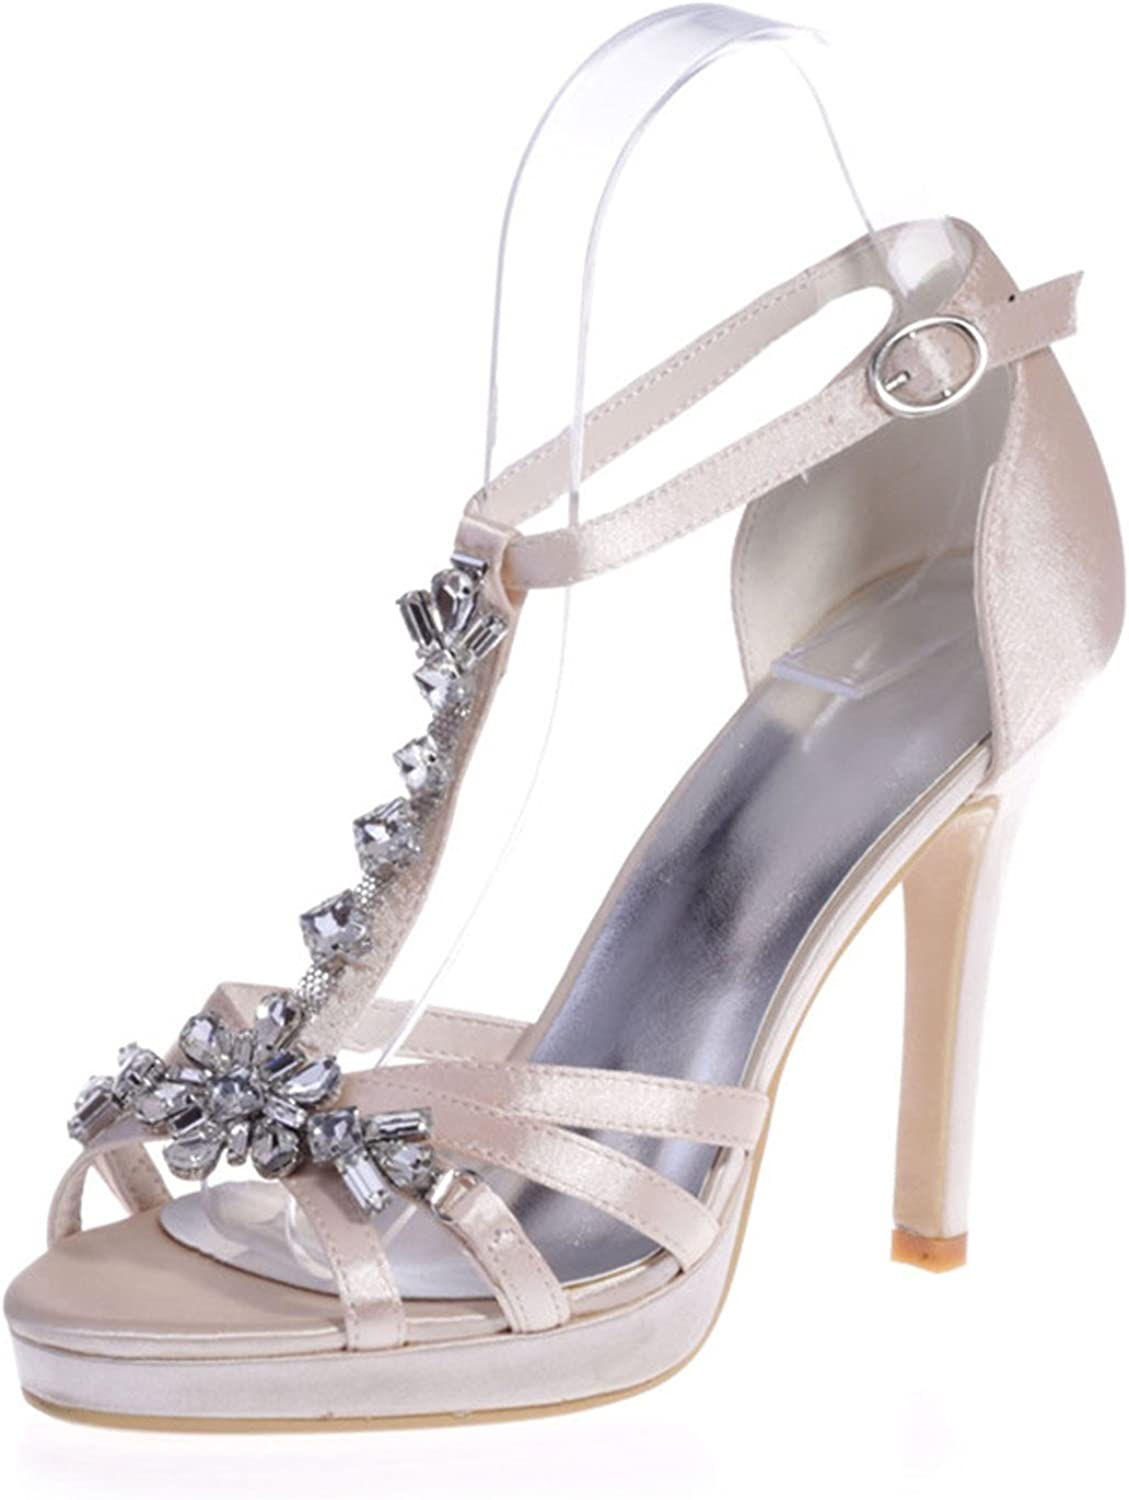 Uryouthstyle Summer Beaded High Heels Stiletto Wedding Pumps shoes Sandals